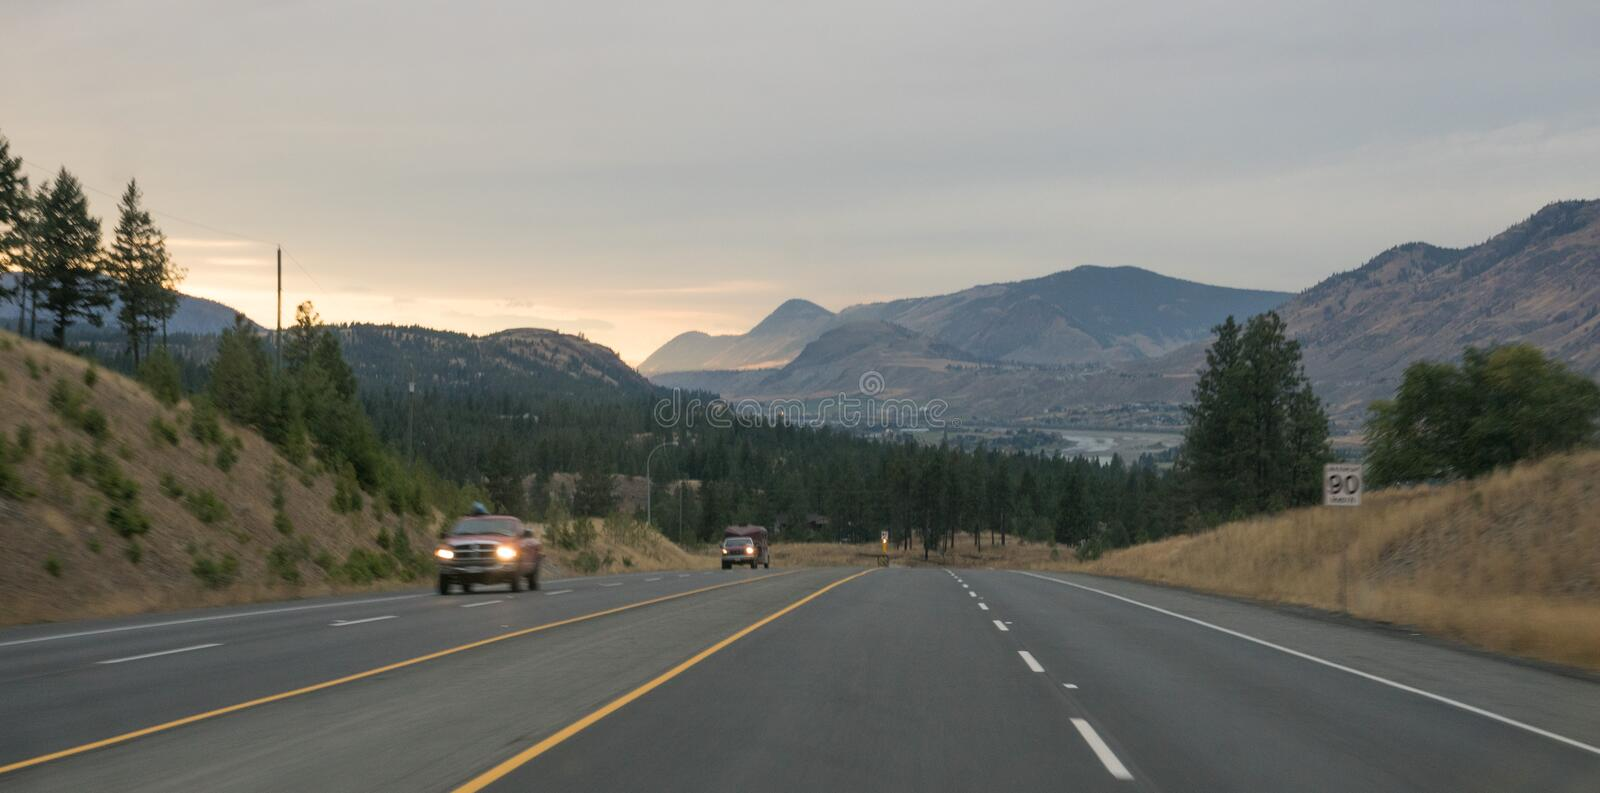 Street at sunset on road trip, mountain range around kamloops, Canada in fall. Street at sunset on road trip, mountain range around kamloops, Canada british stock images